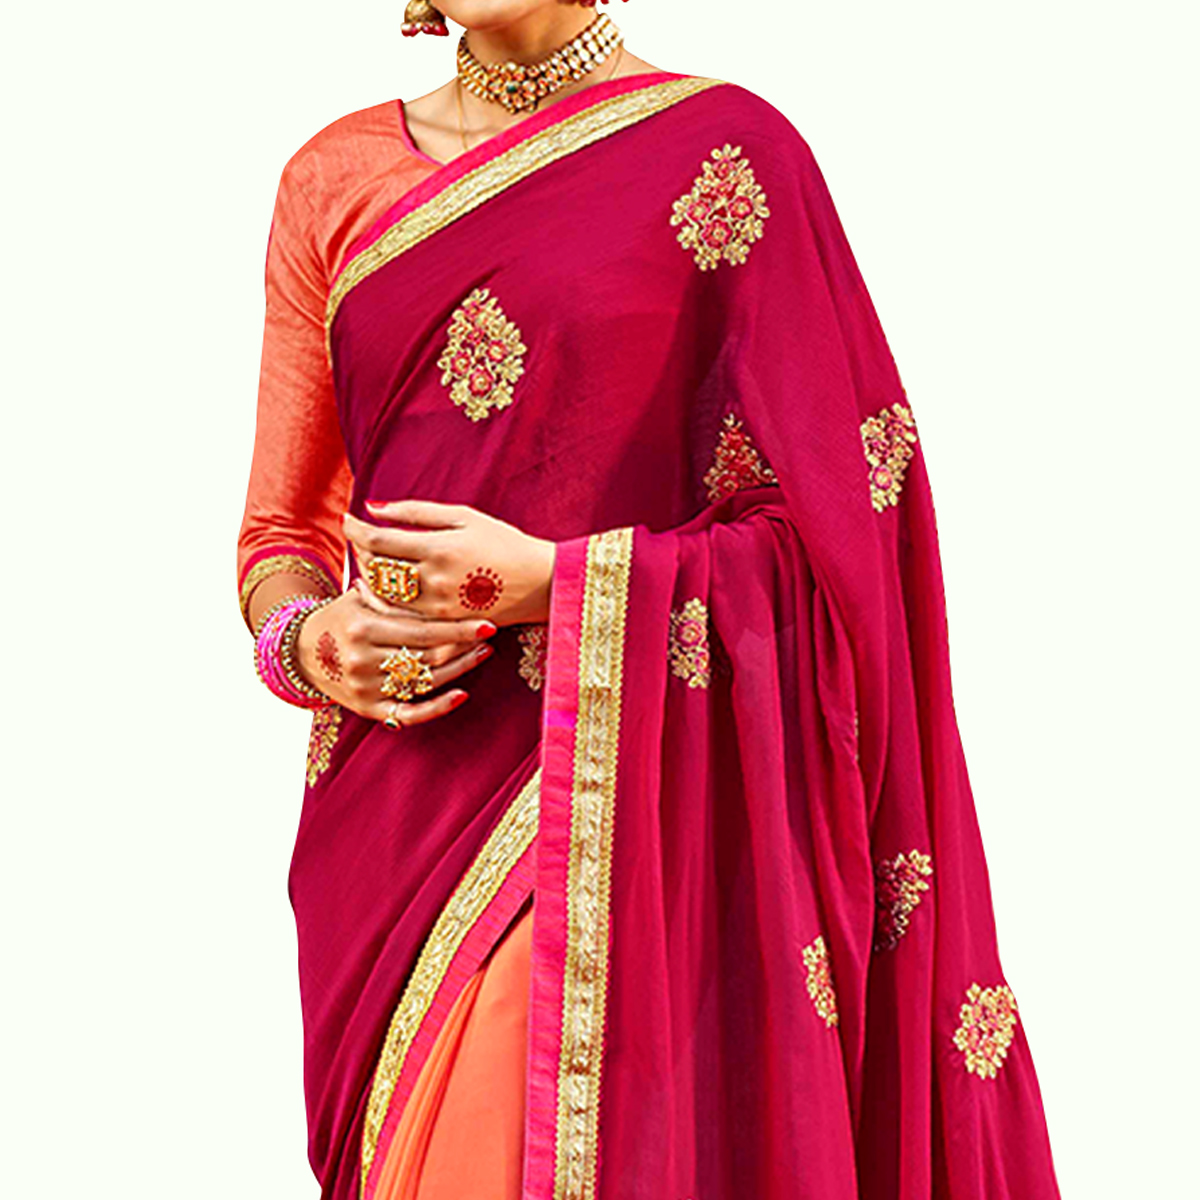 Capricious Rani Pink-Peach Colored Party Wear Embroidered Half & Half Saree